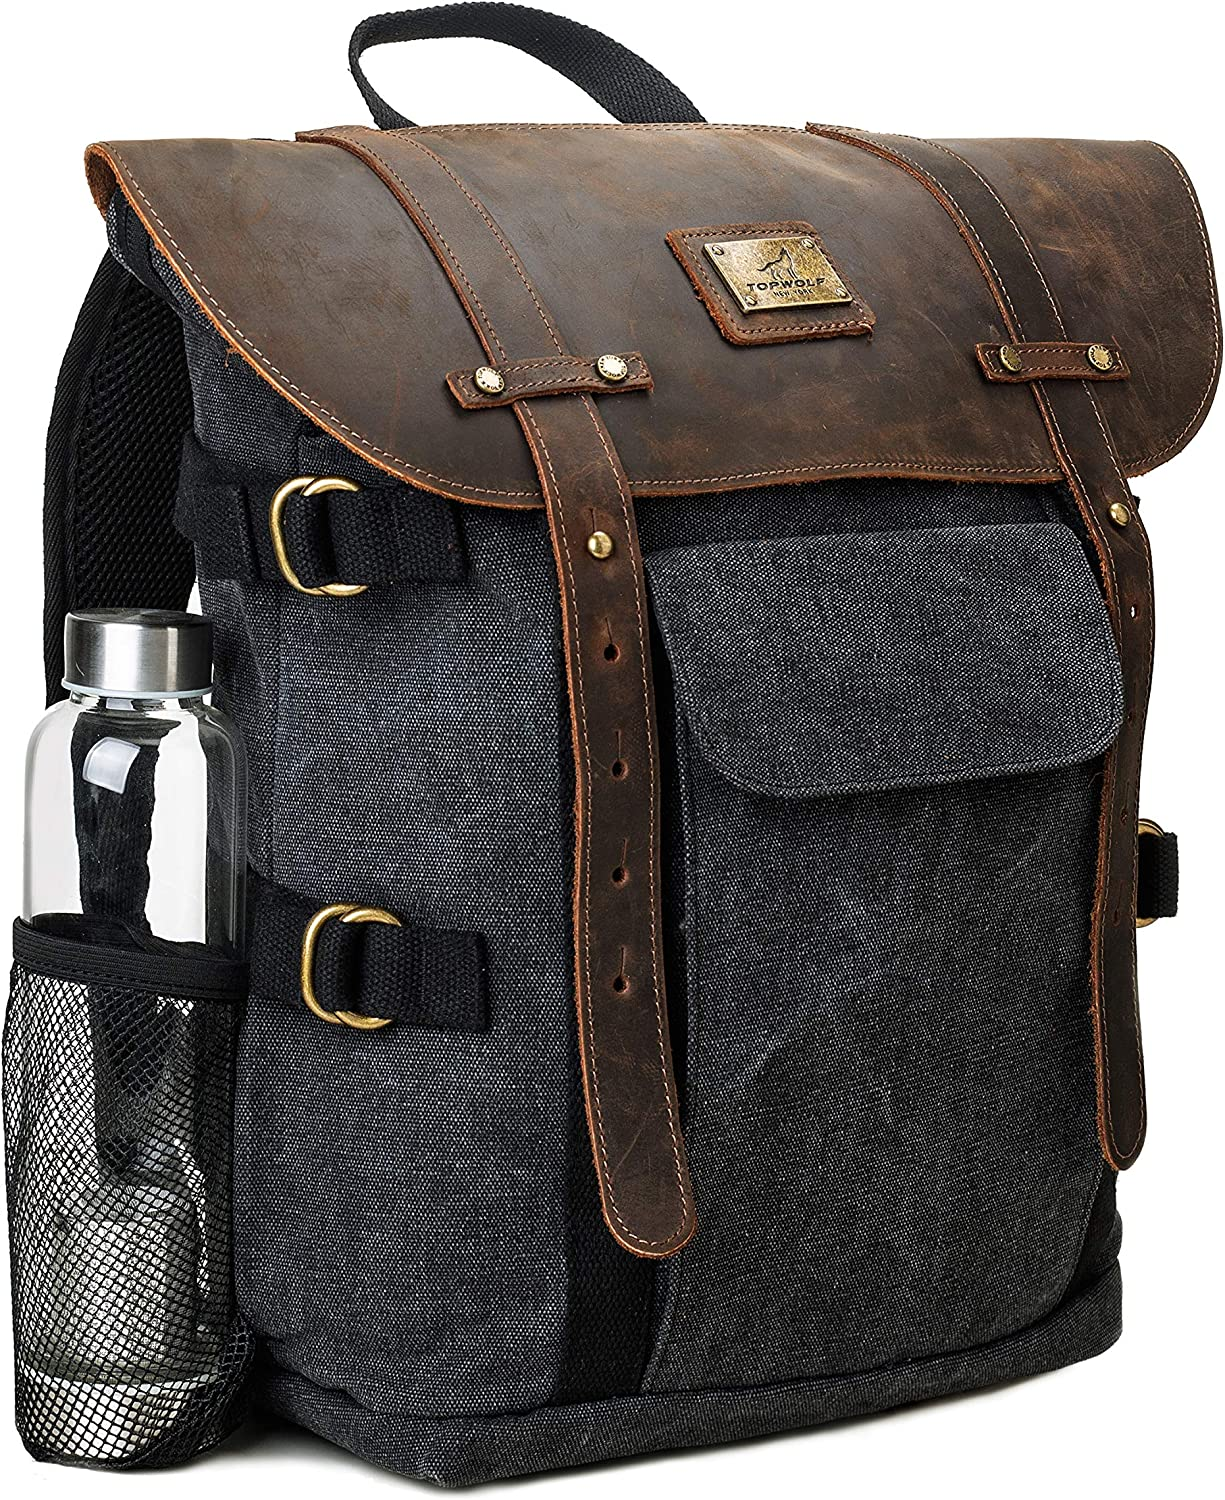 Leather Backpack for Men TOPWOLFS Canvas Backpack Vintage Rucksack fit 15.6 Laptop Books School Travel Bag